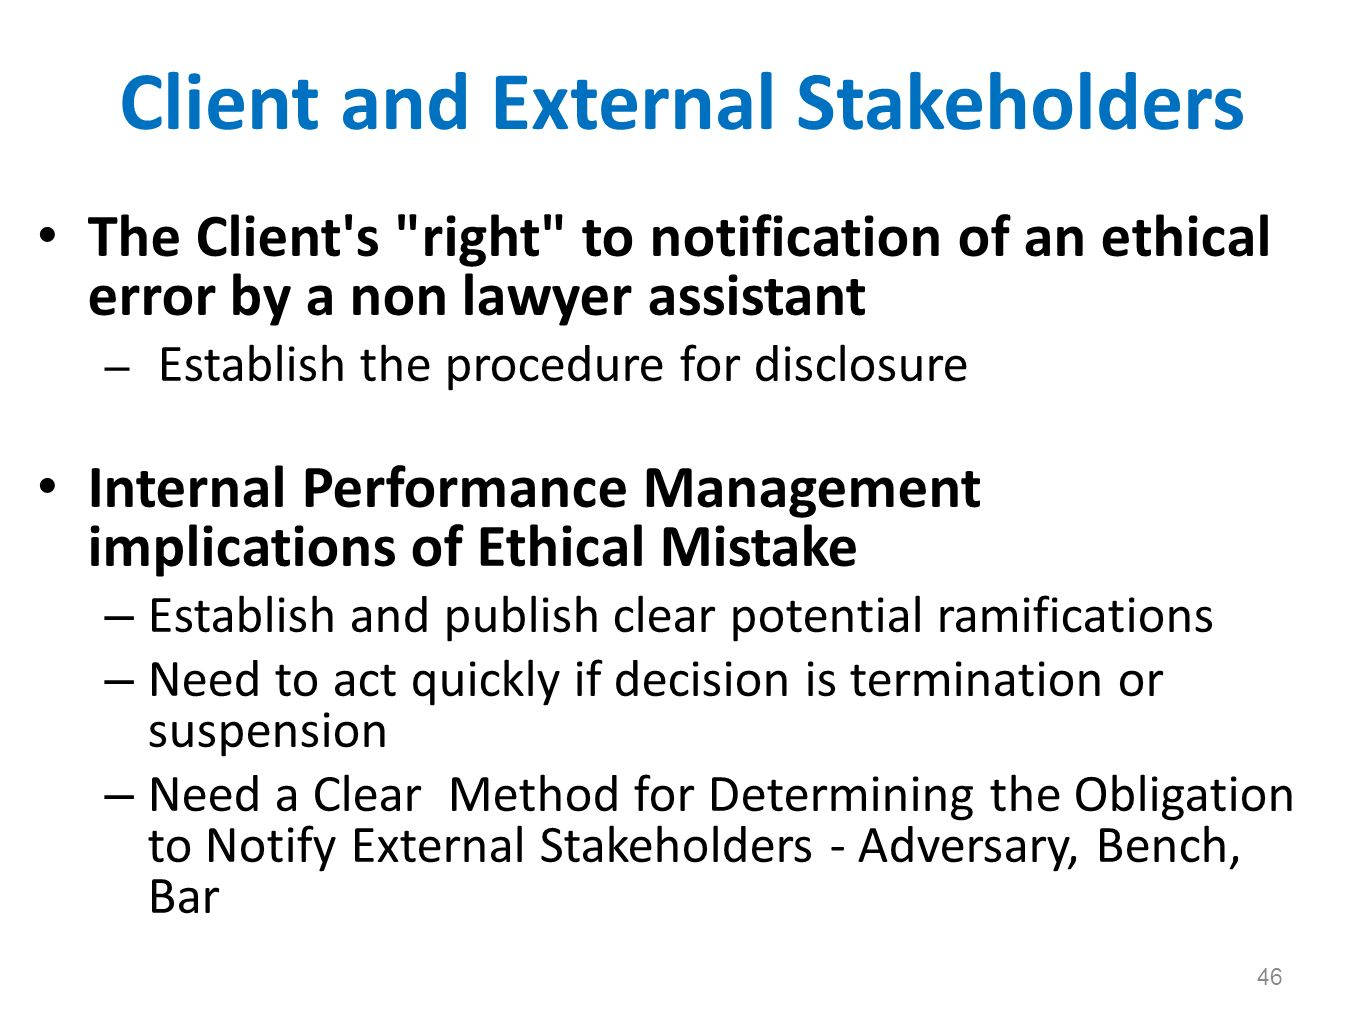 Client and External Stakeholders